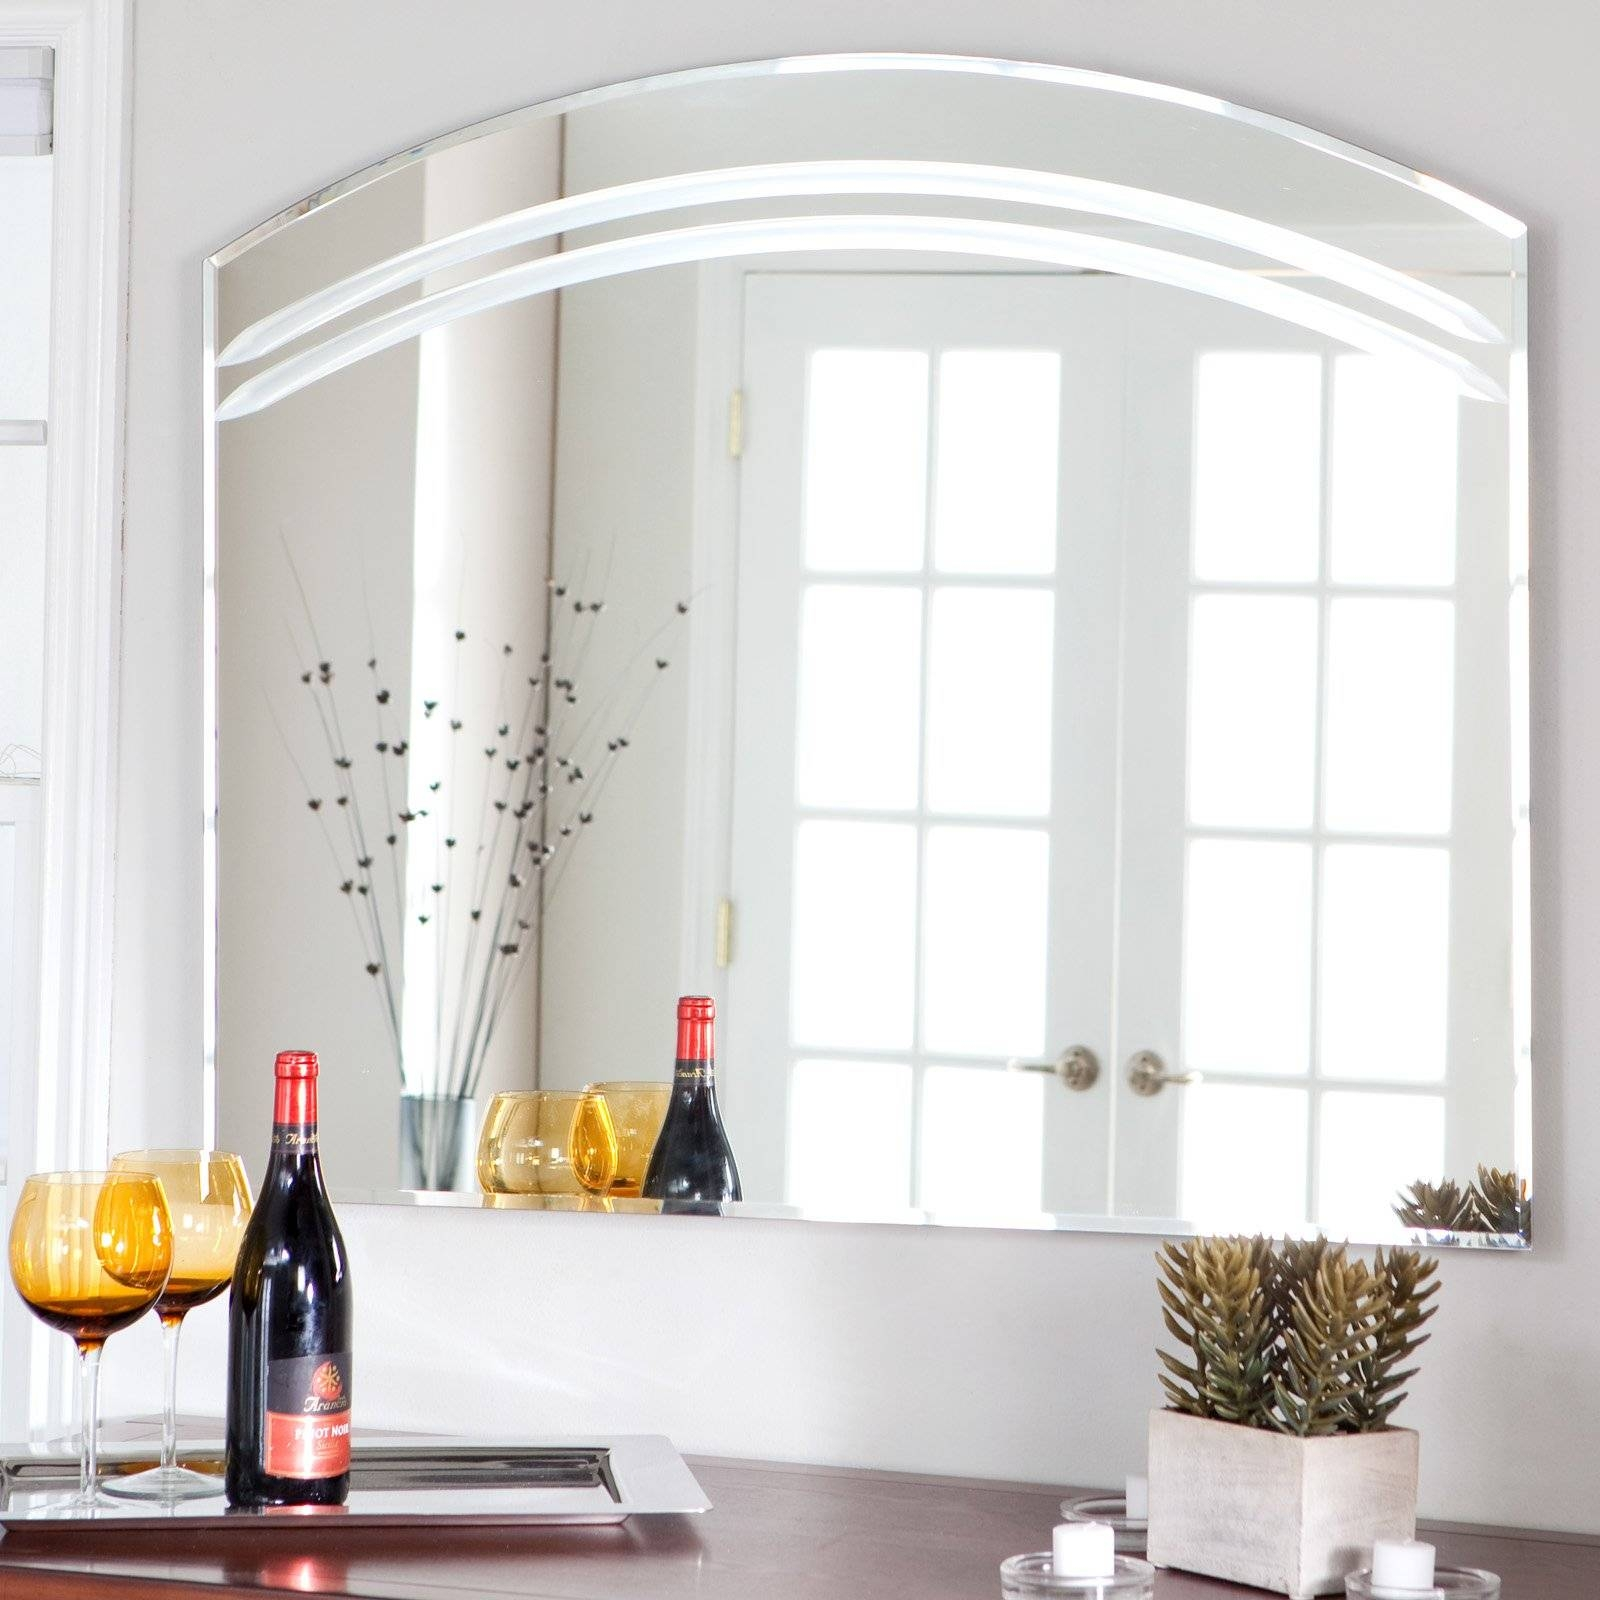 Décor Wonderland Angel Large Frameless Arched Wall Mirror - 39.5W with regard to Arched Bathroom Mirrors (Image 9 of 15)